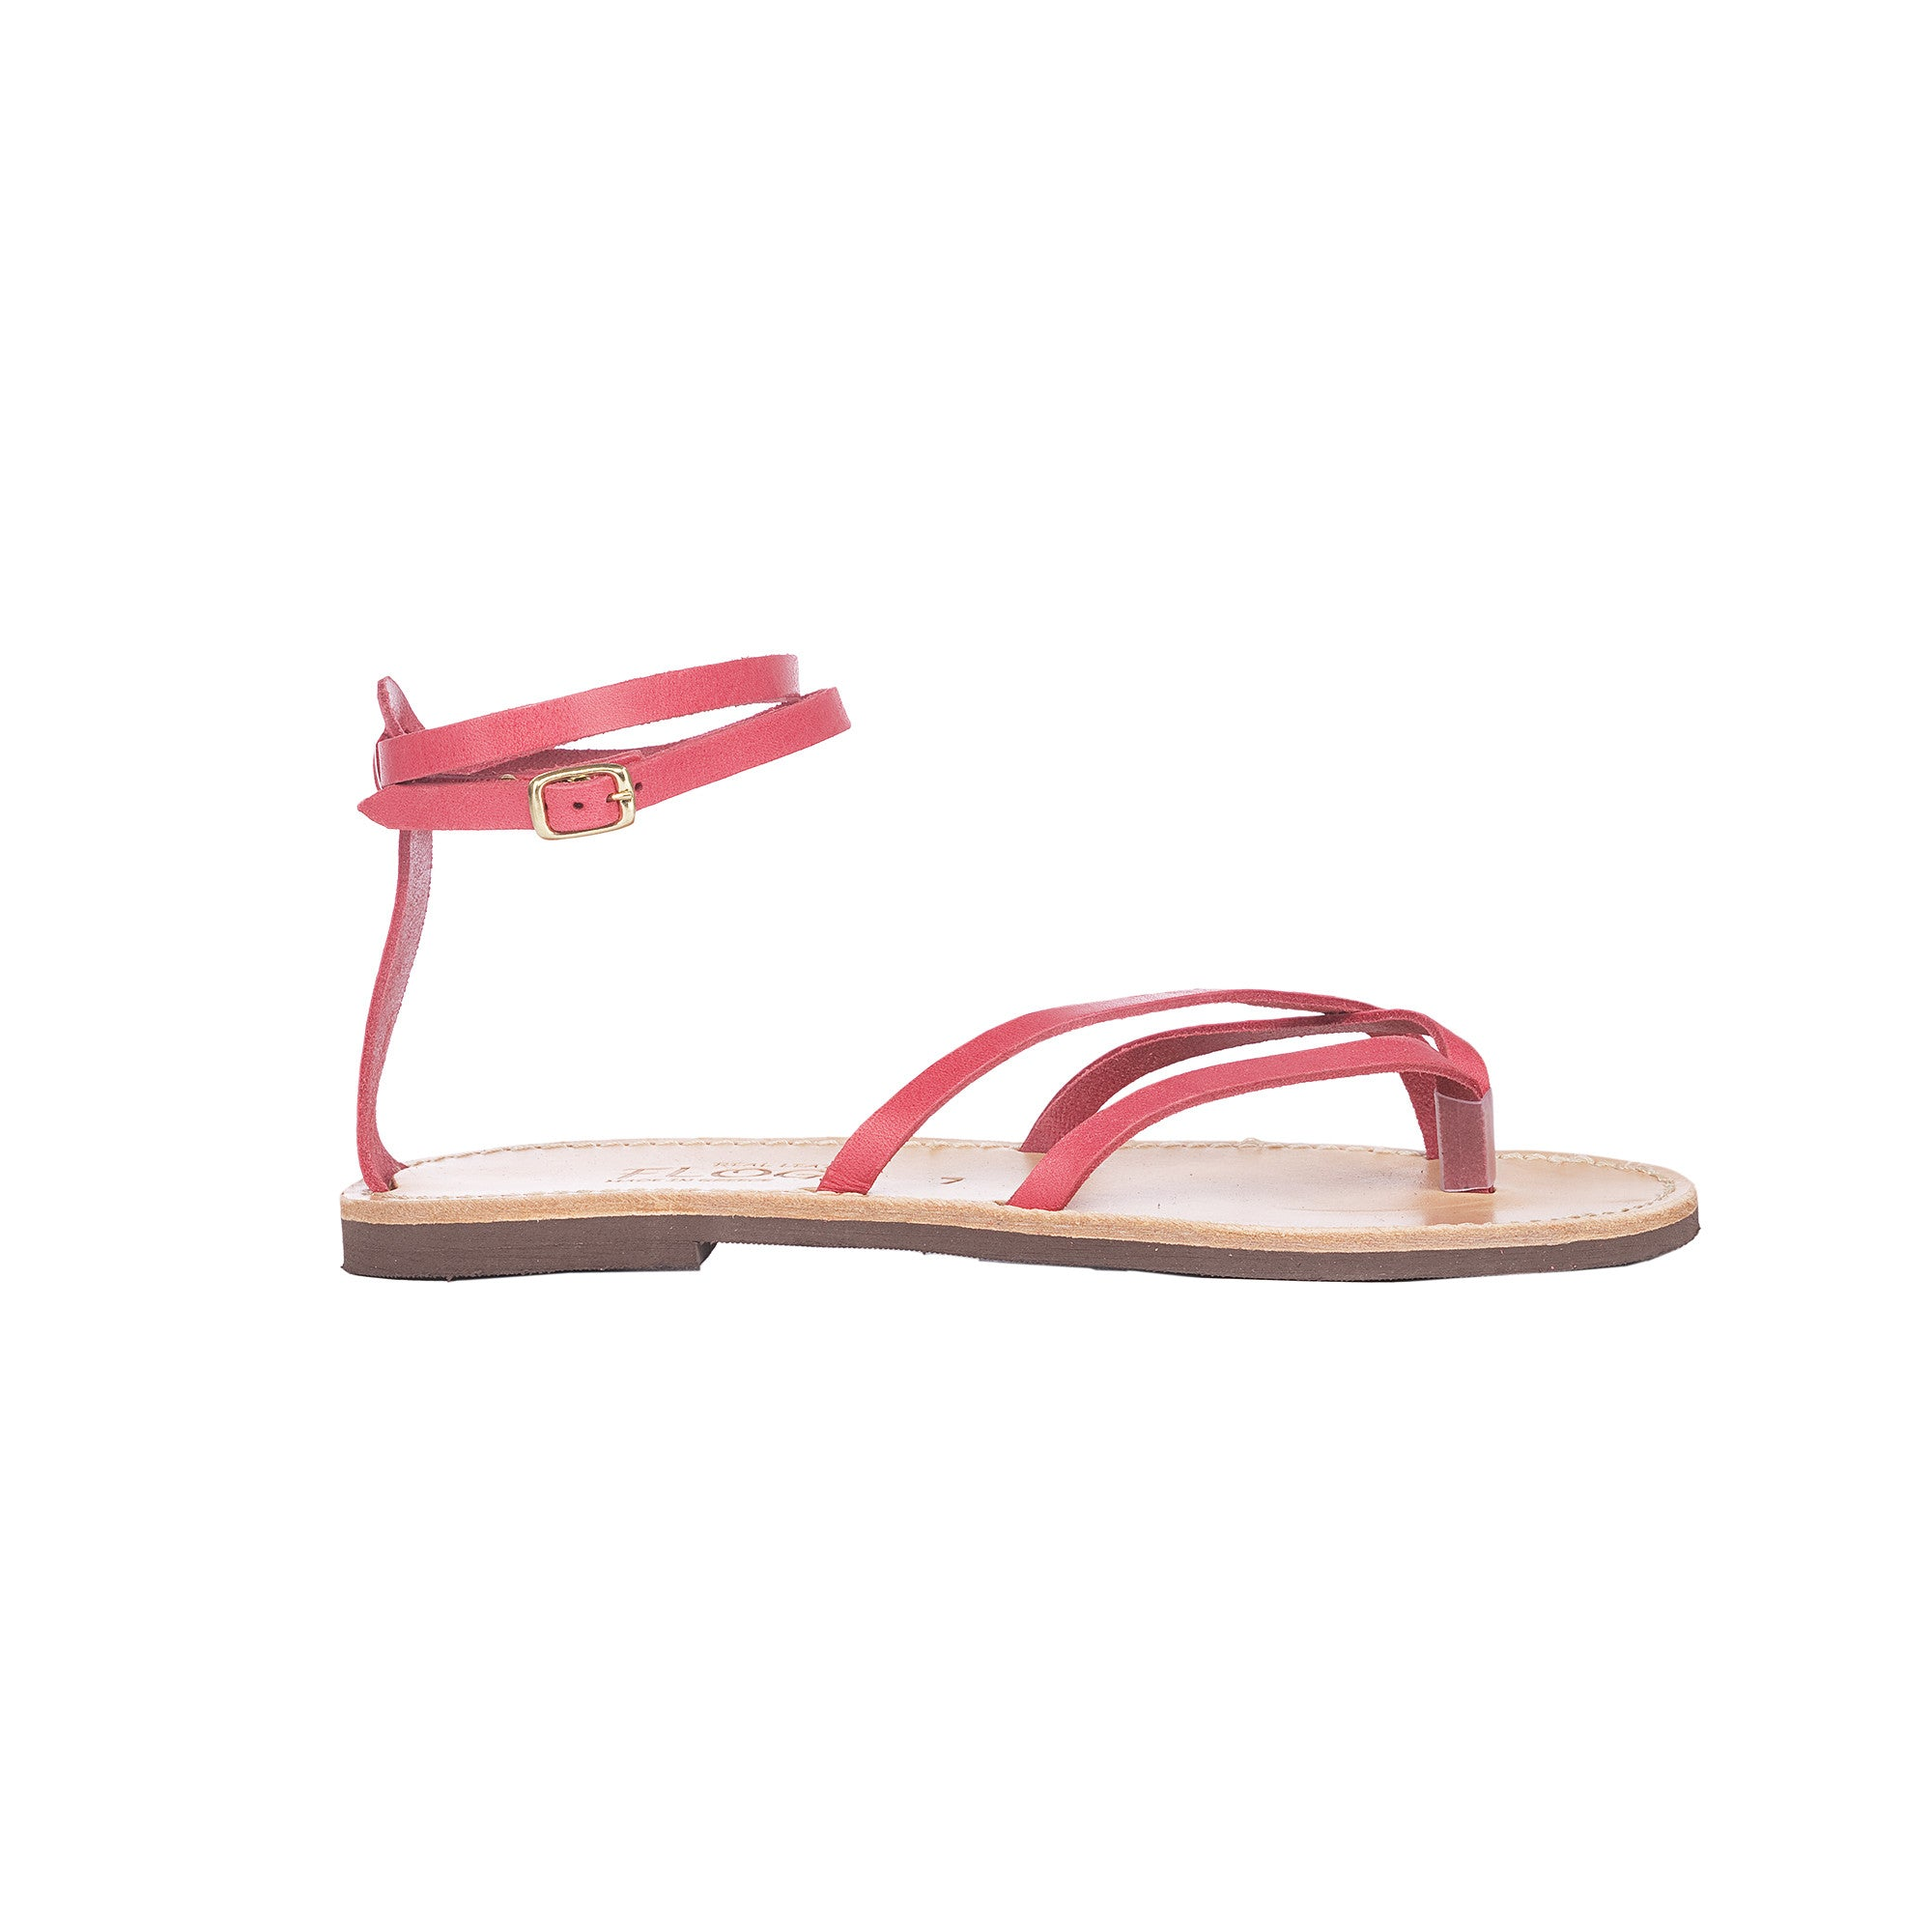 Dionysia Greek Leather Sandals